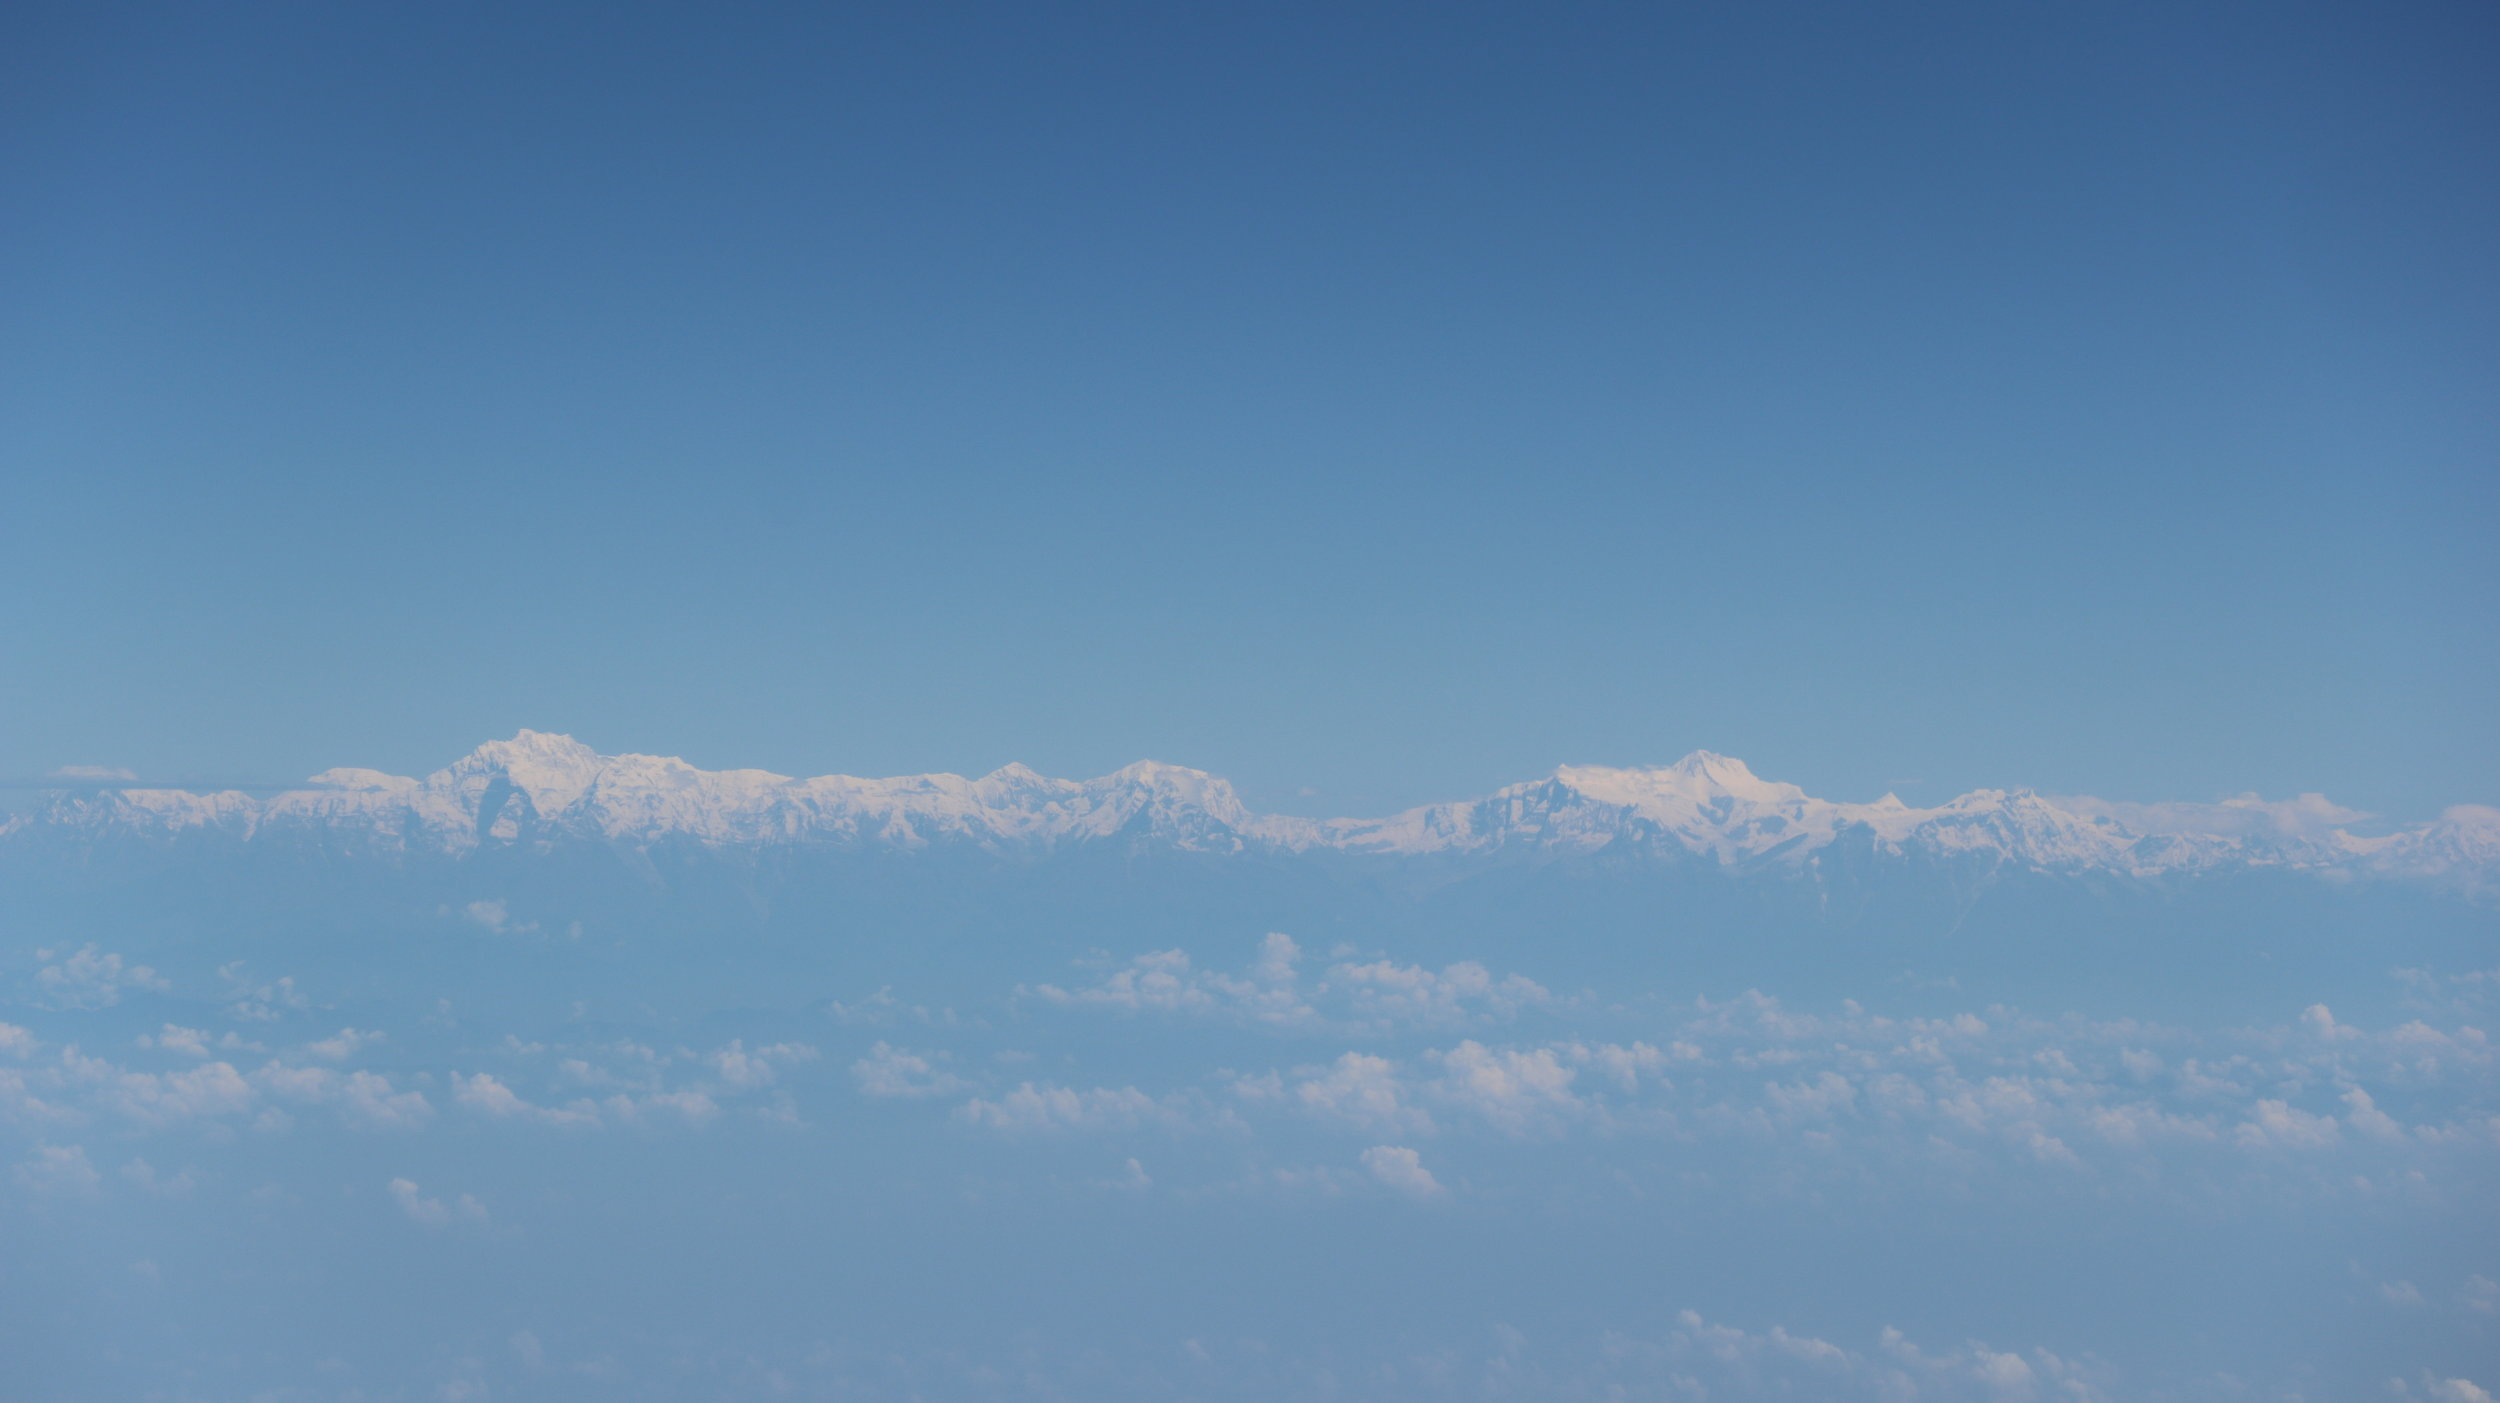 Mt Everest is on the right